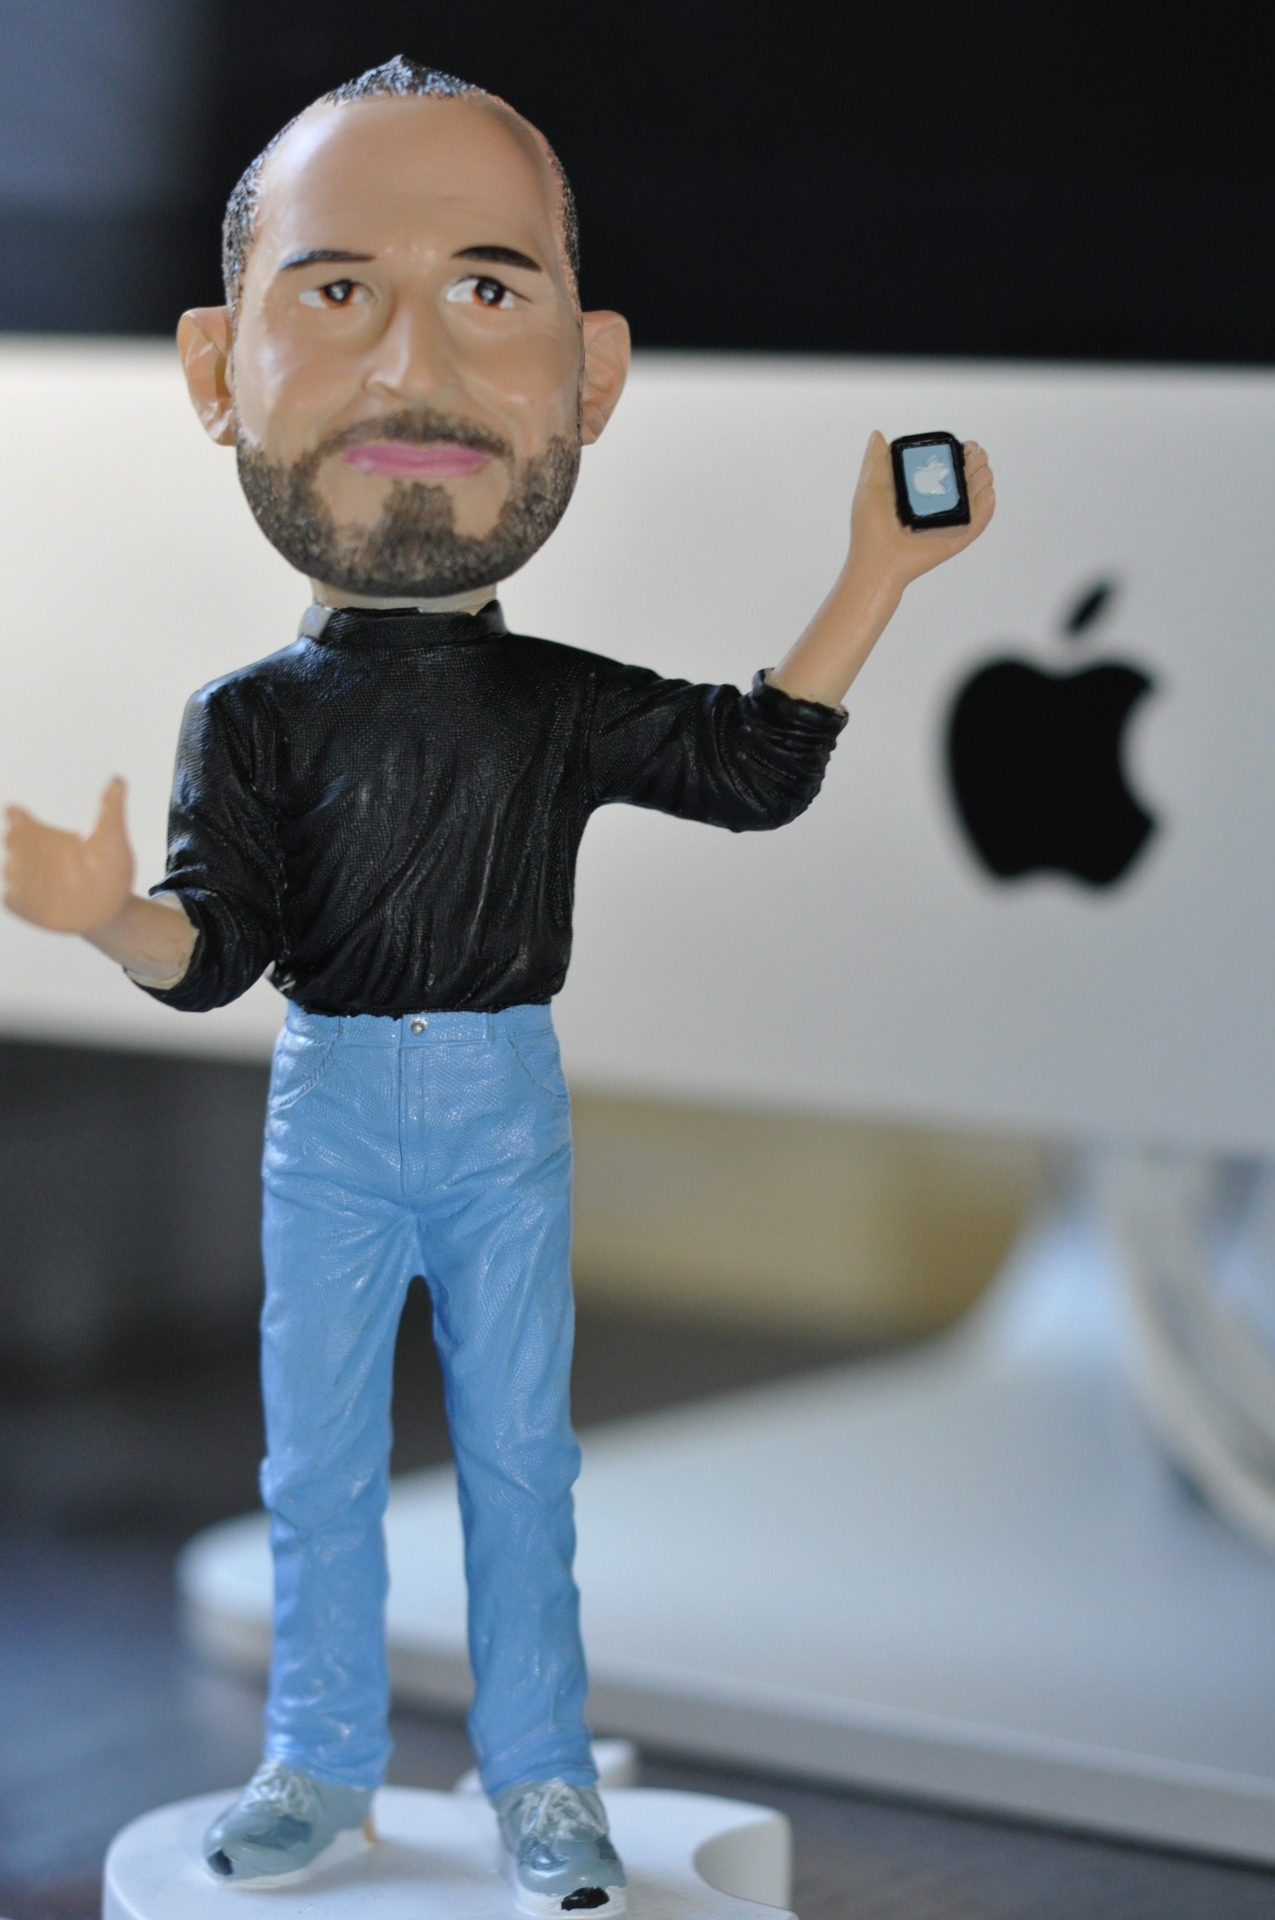 Steve Jobs Purchased on eBay